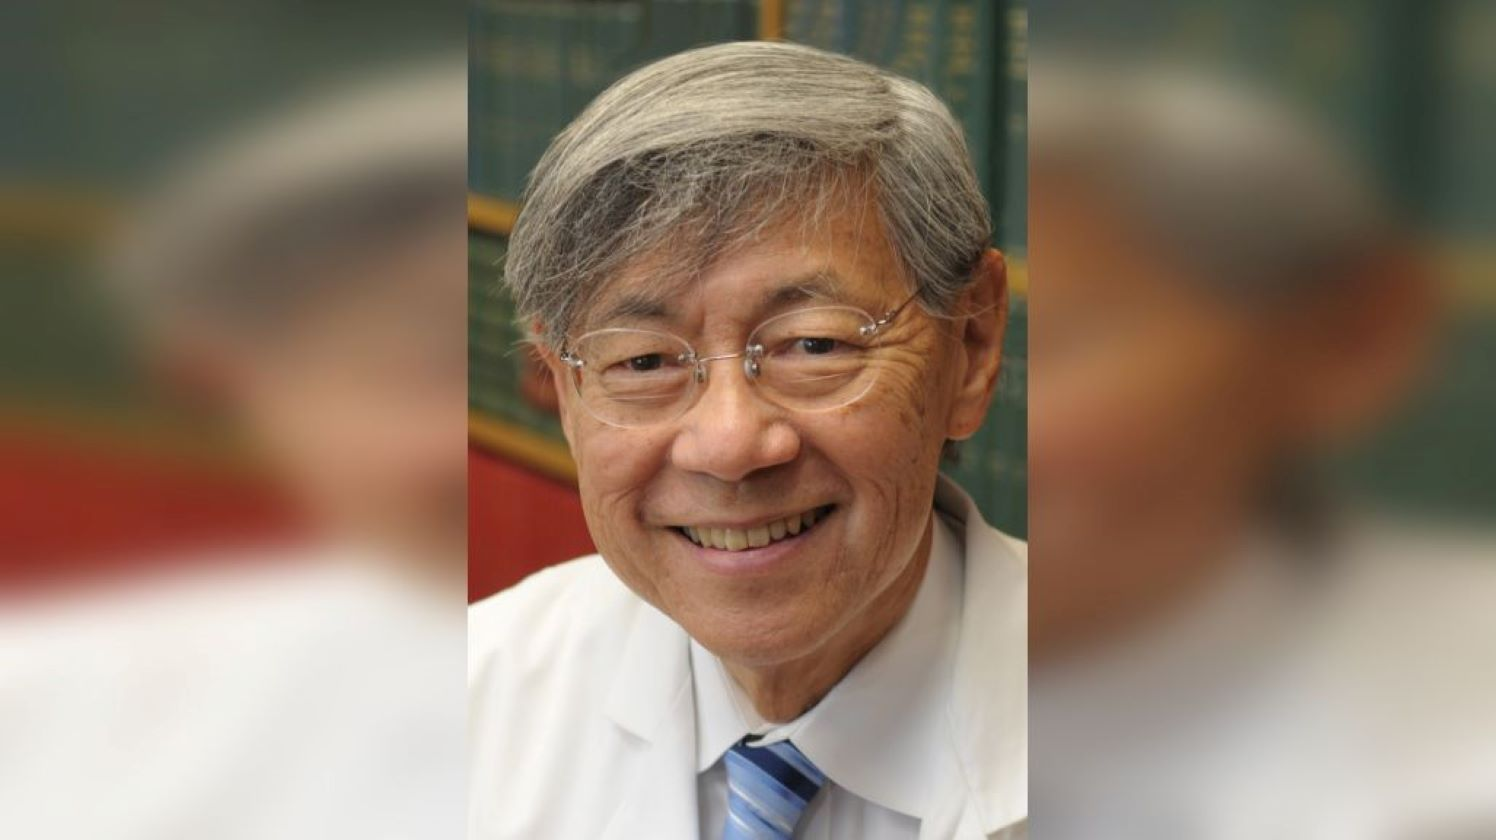 Dr. Clarence T. Sasaki, Charles W. Ohse Professor of Surgery